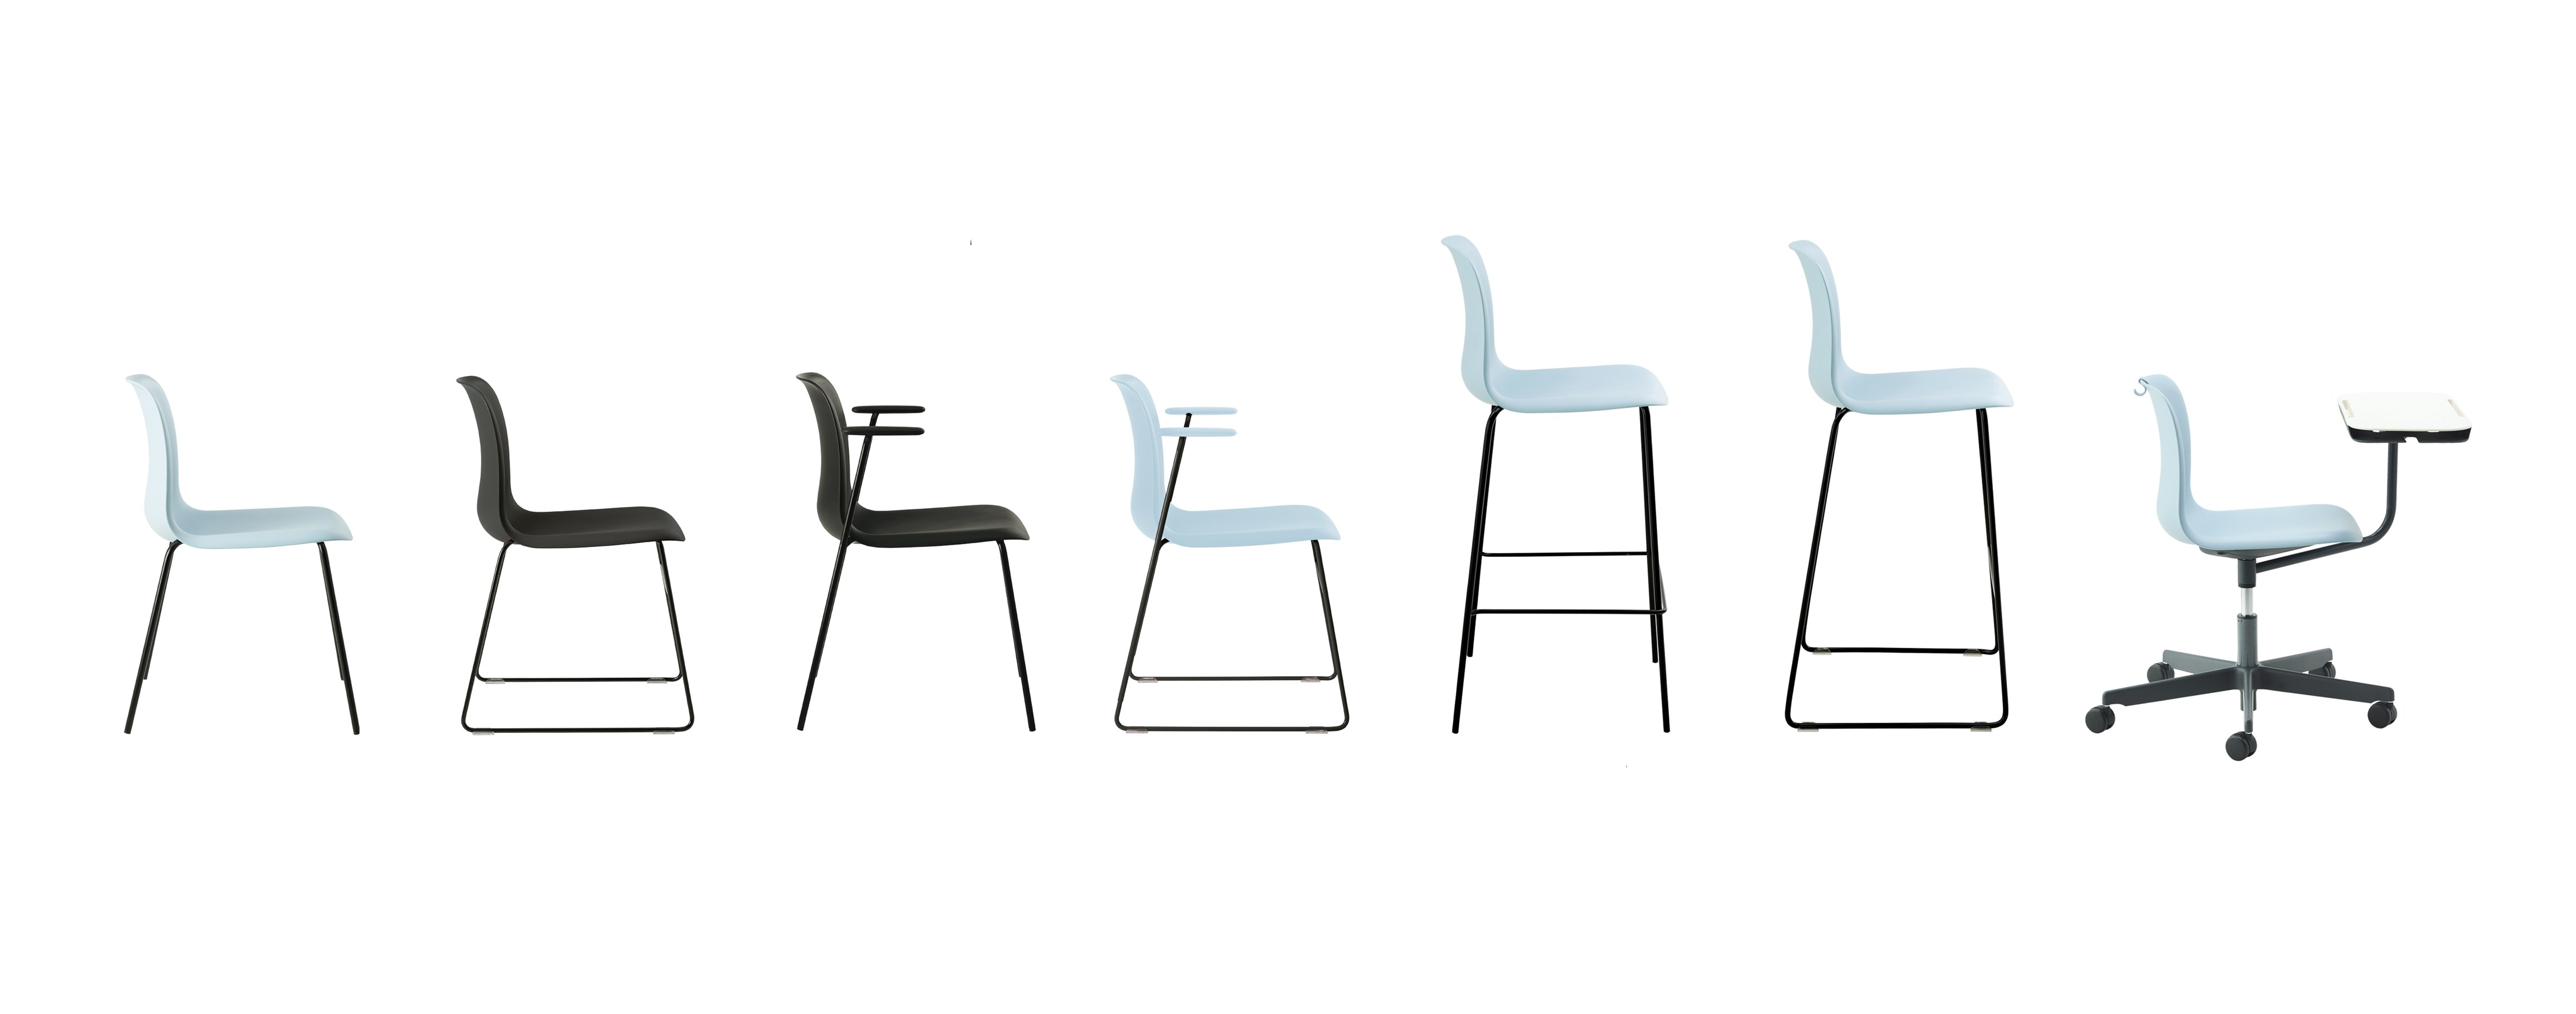 sixe high stool by howe design pearsonlloyd. Black Bedroom Furniture Sets. Home Design Ideas